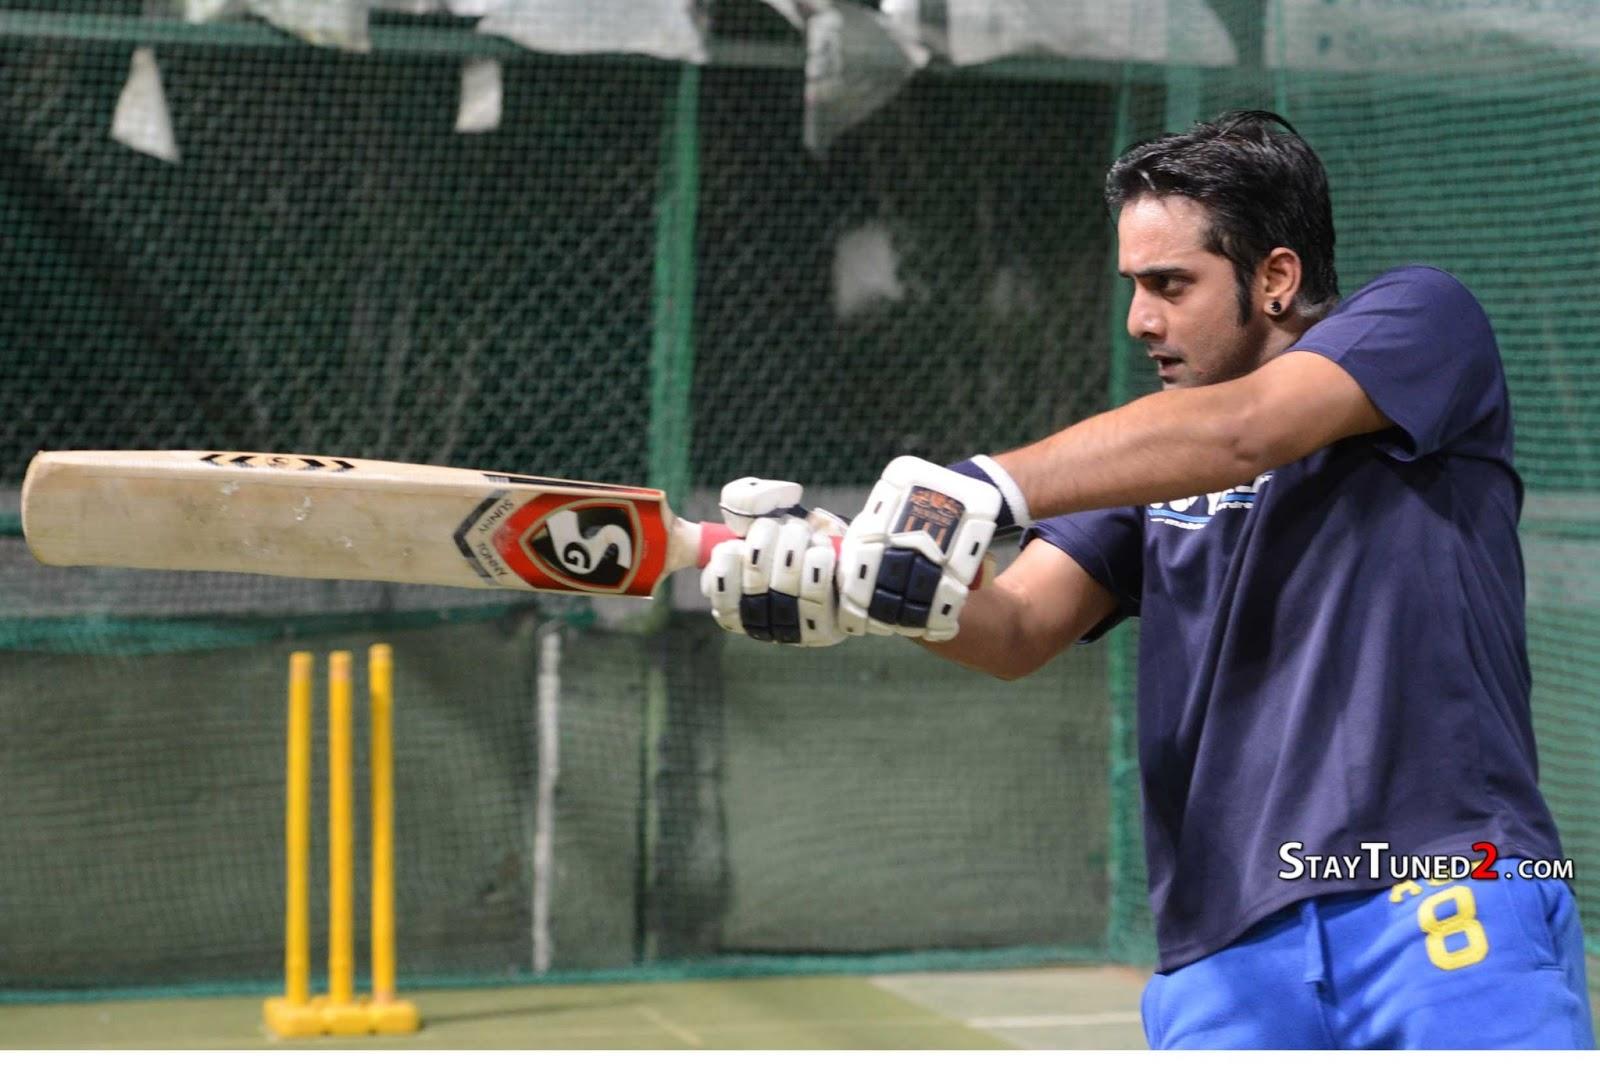 http://4.bp.blogspot.com/-D8s5QlHh1vQ/URNODkLlcUI/AAAAAAAAFVQ/vVOx8k2-X1I/s1600/Telugu-Warriors-Practicing-For-CCL-3-At-In-Sportz-Stadium-62.jpg